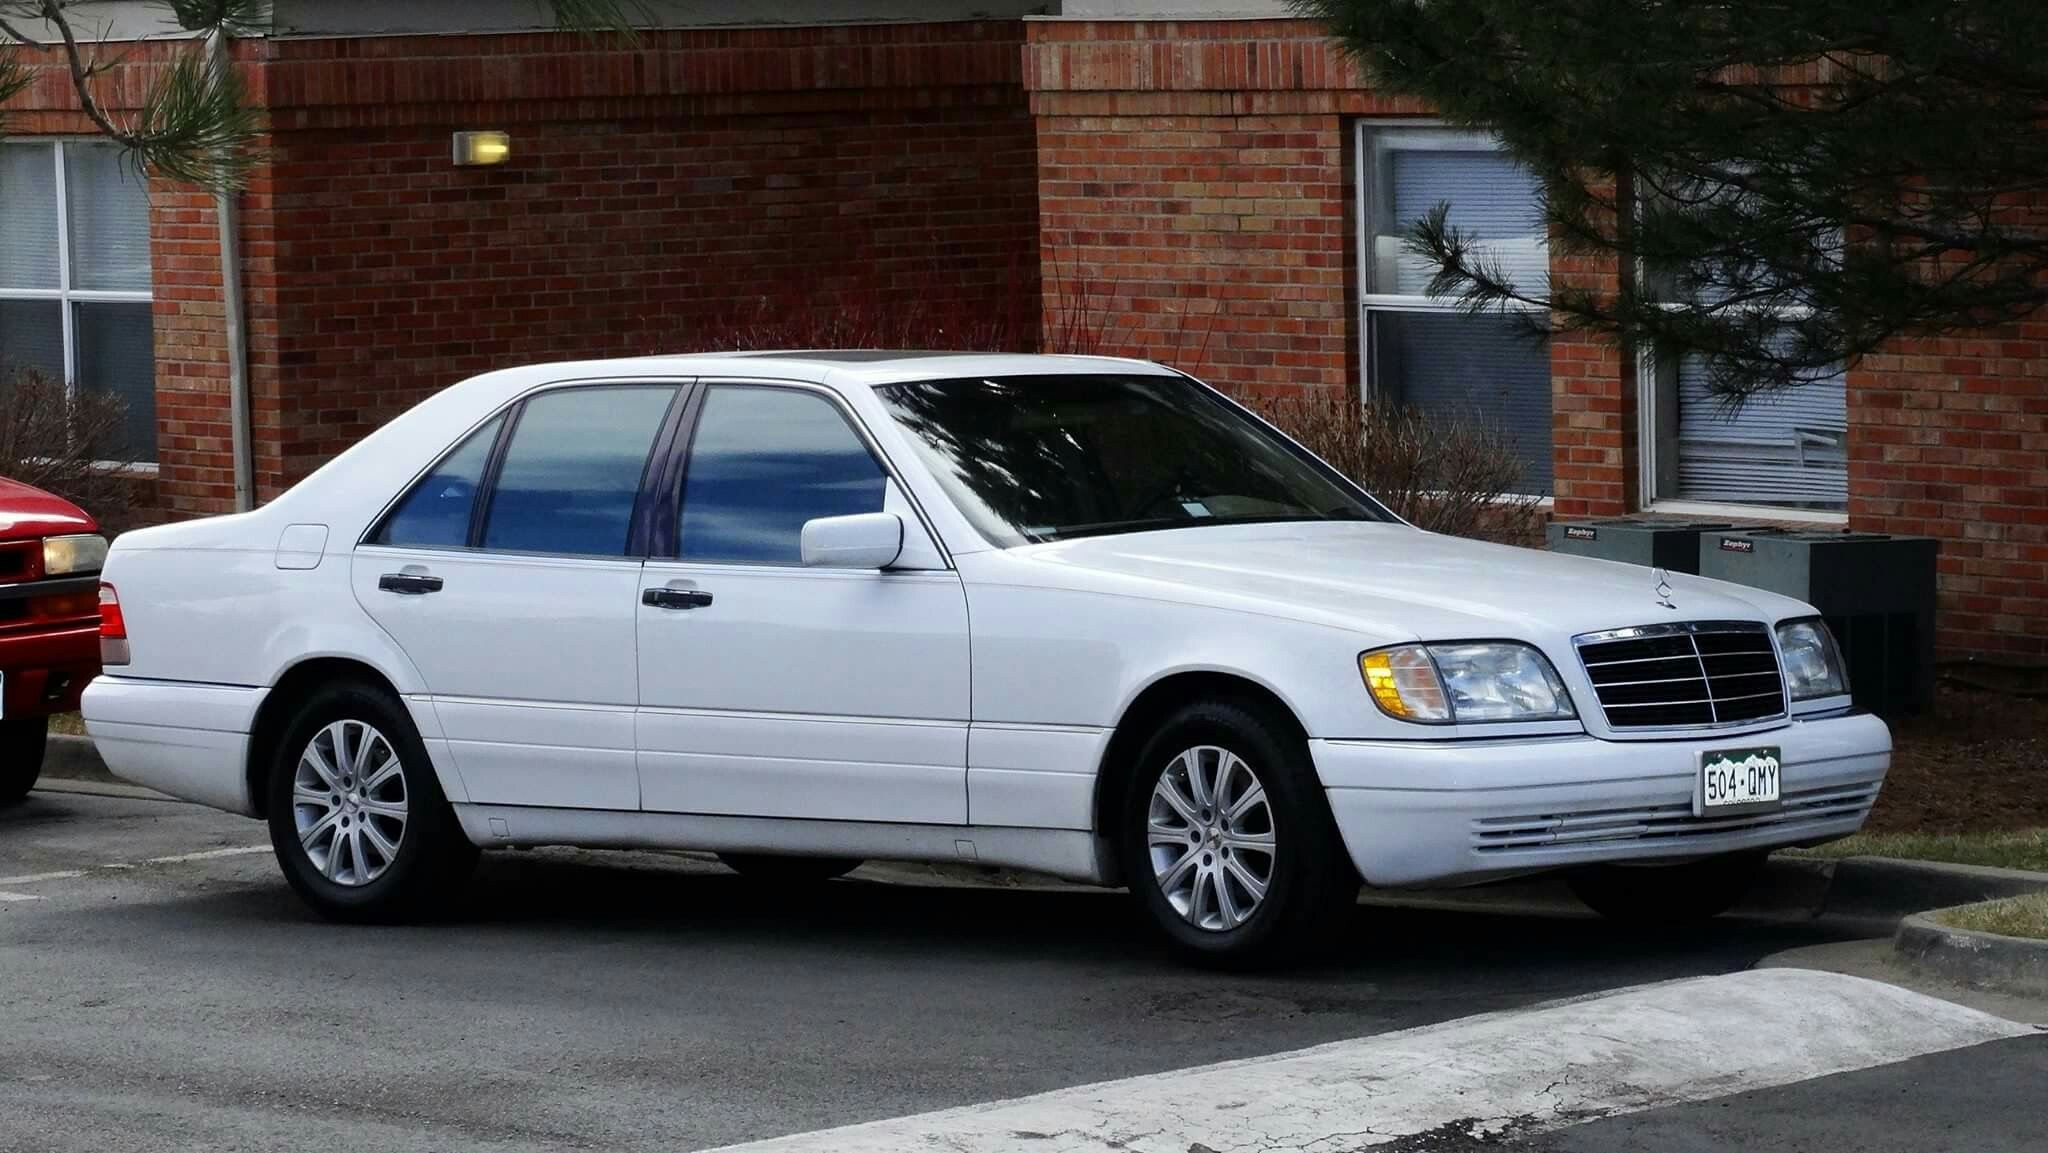 Pin by Farooq on Mercedes Benz W140 Pinterest